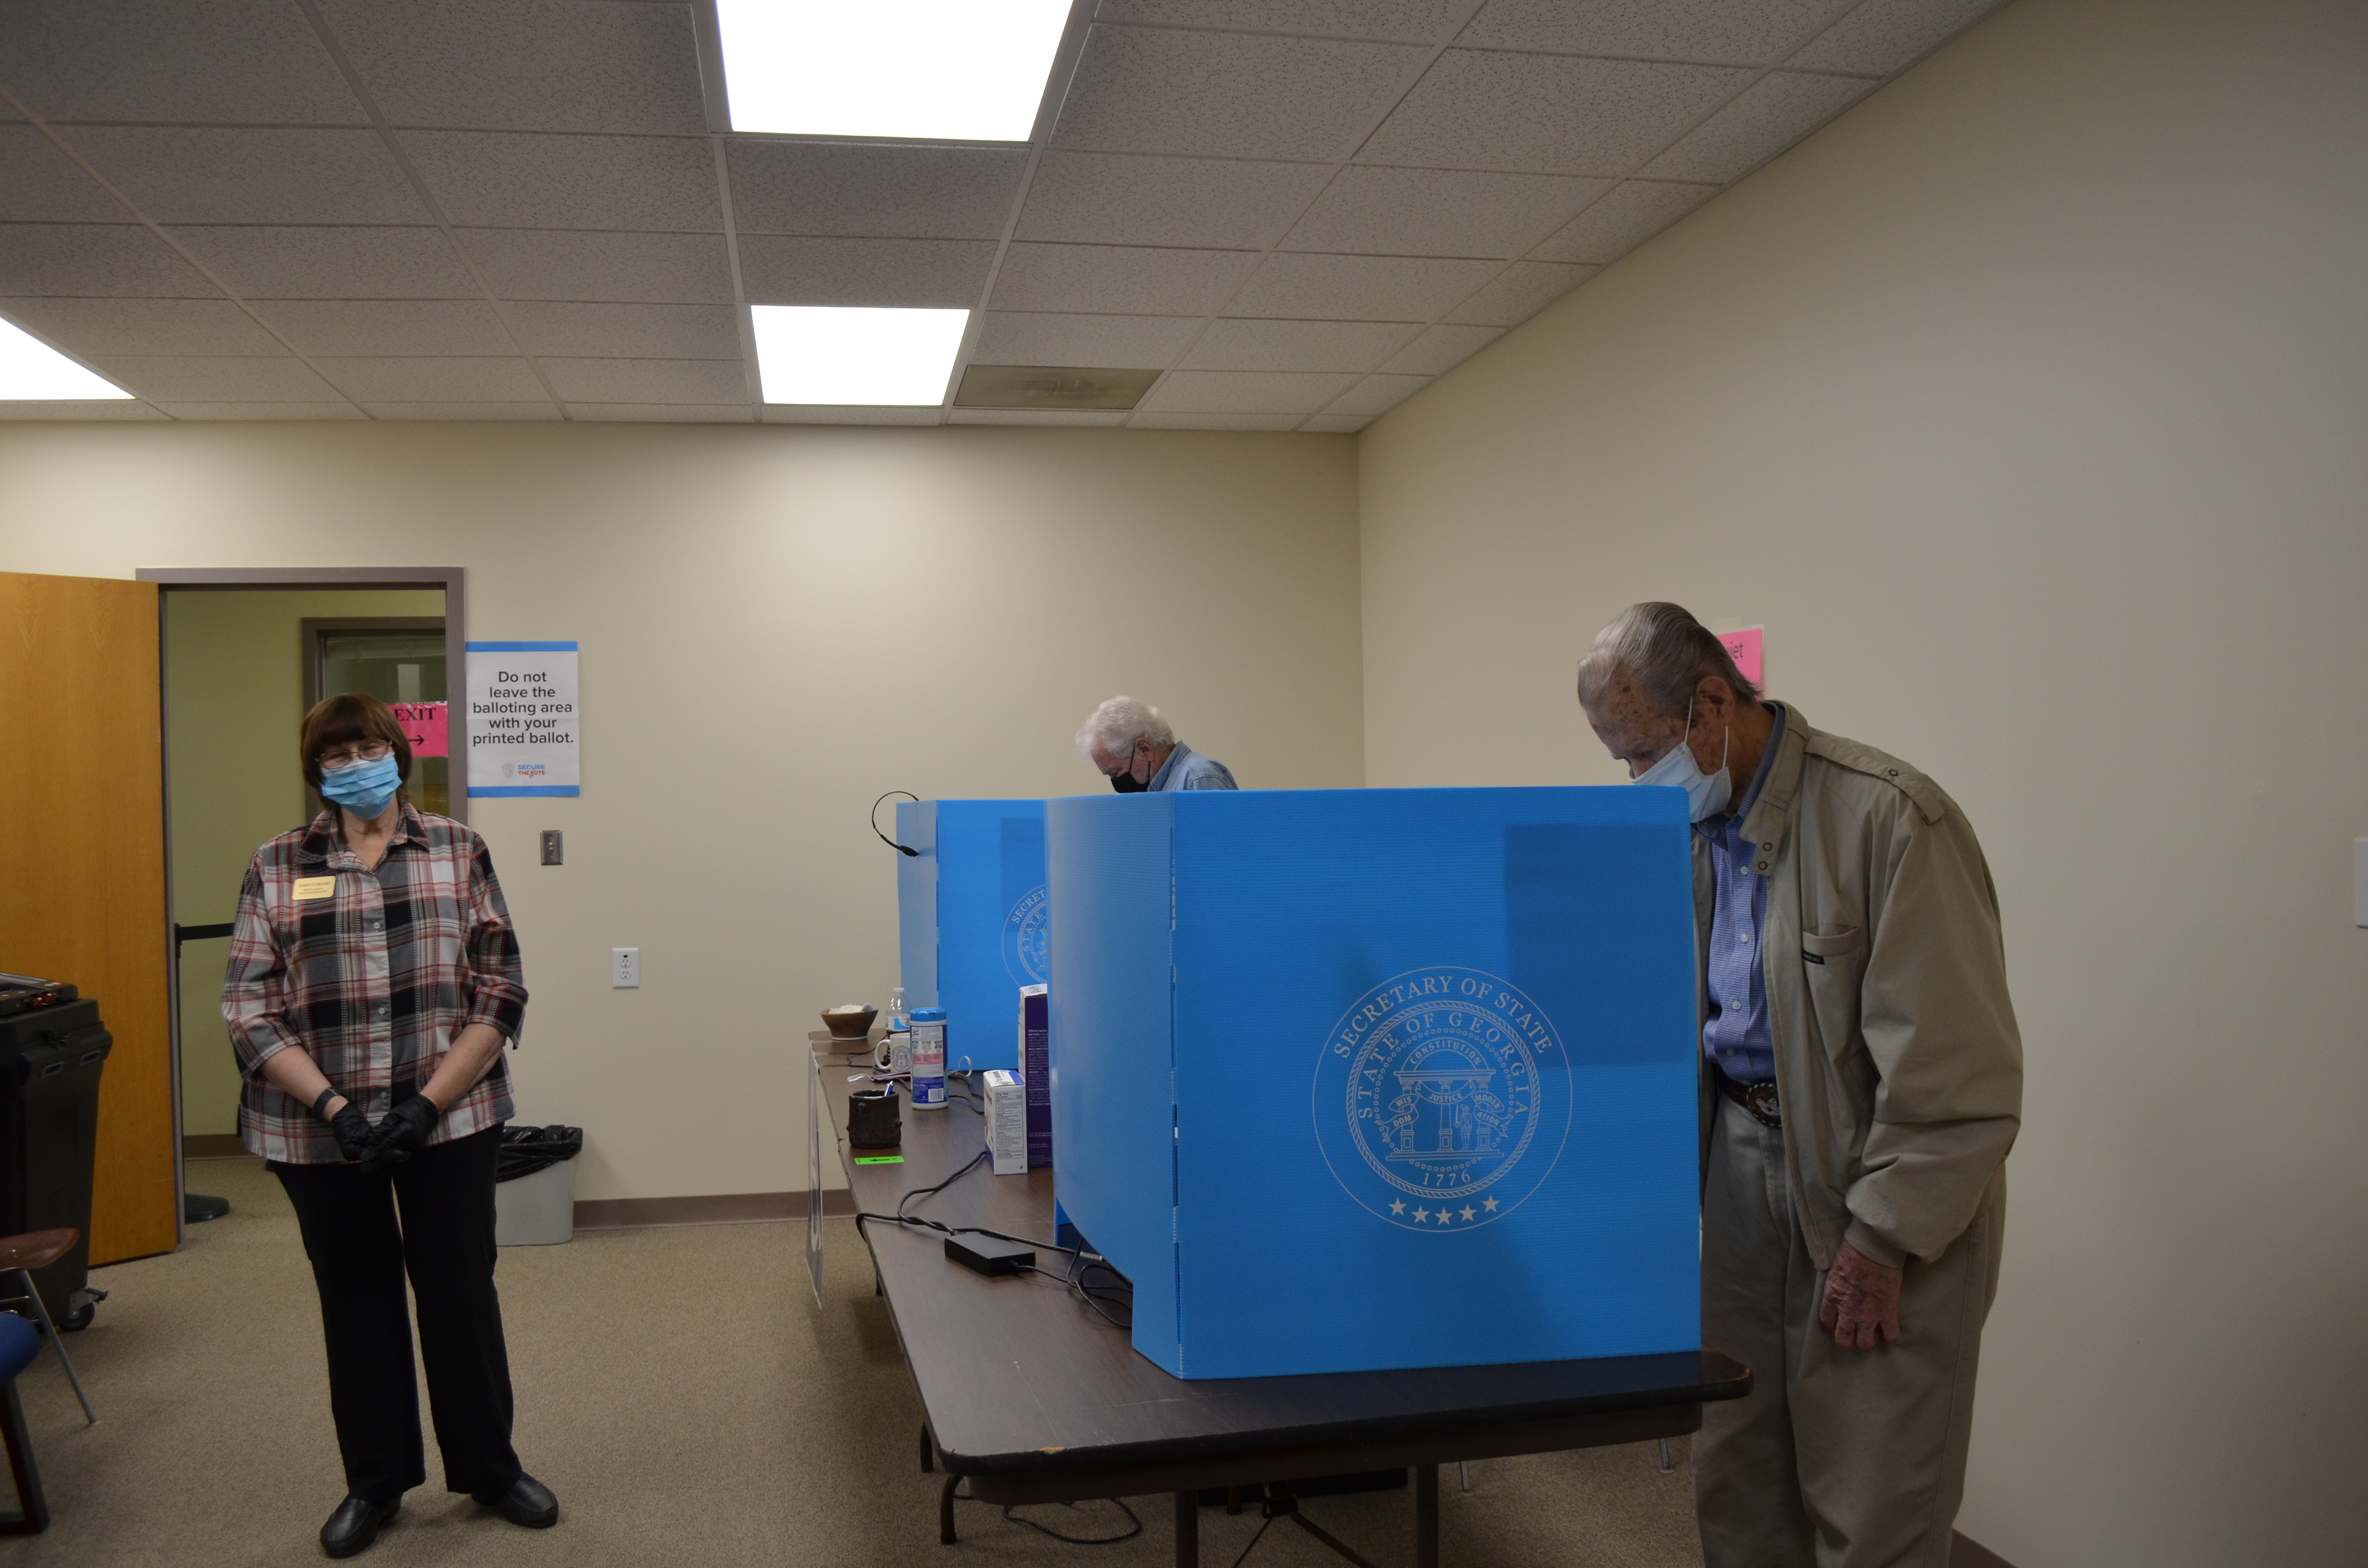 White County voters have already been busy with greater participation than usual in absentee balloting, as well as taking part in early in-person voting, which continues through this Friday, June 5. (File photo/Stephanie HIll)